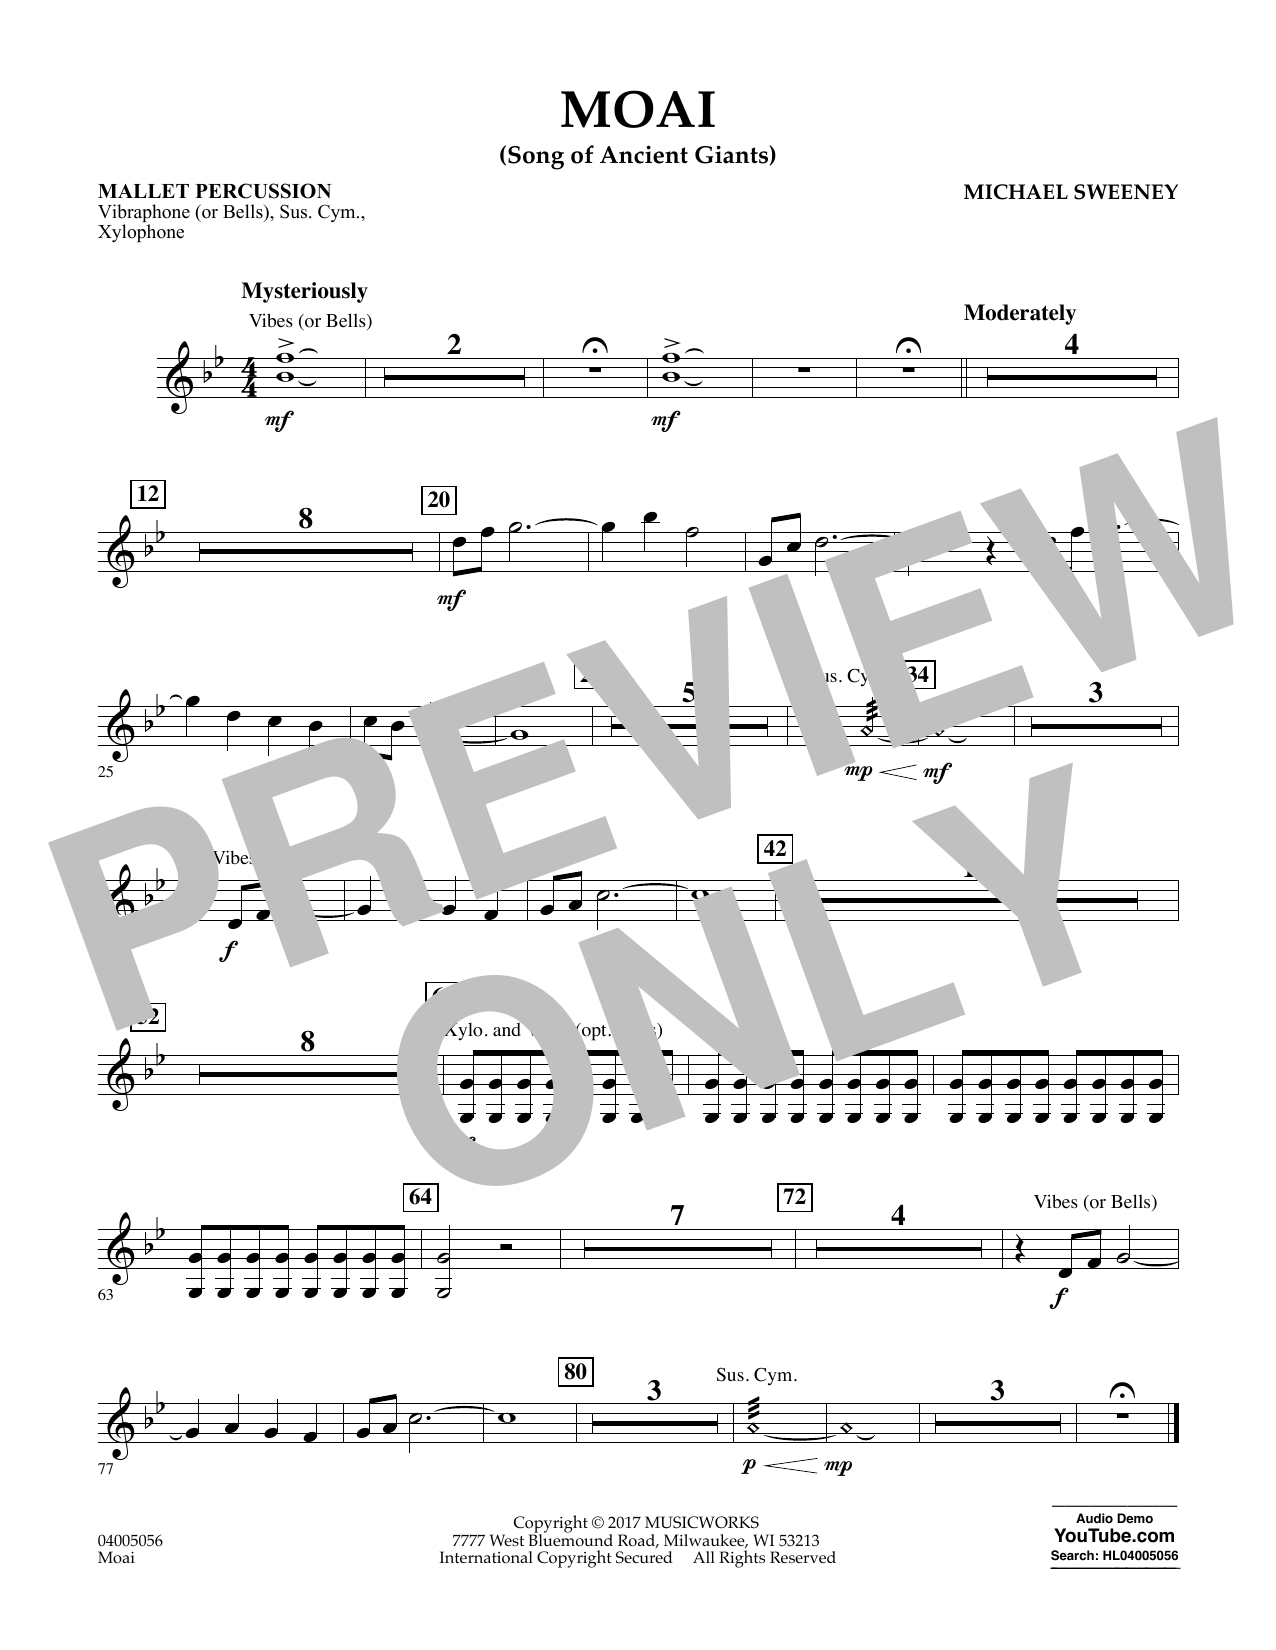 Michael Sweeney Moai (Songs of Ancient Giants) - Mallet Percussion sheet music notes and chords. Download Printable PDF.